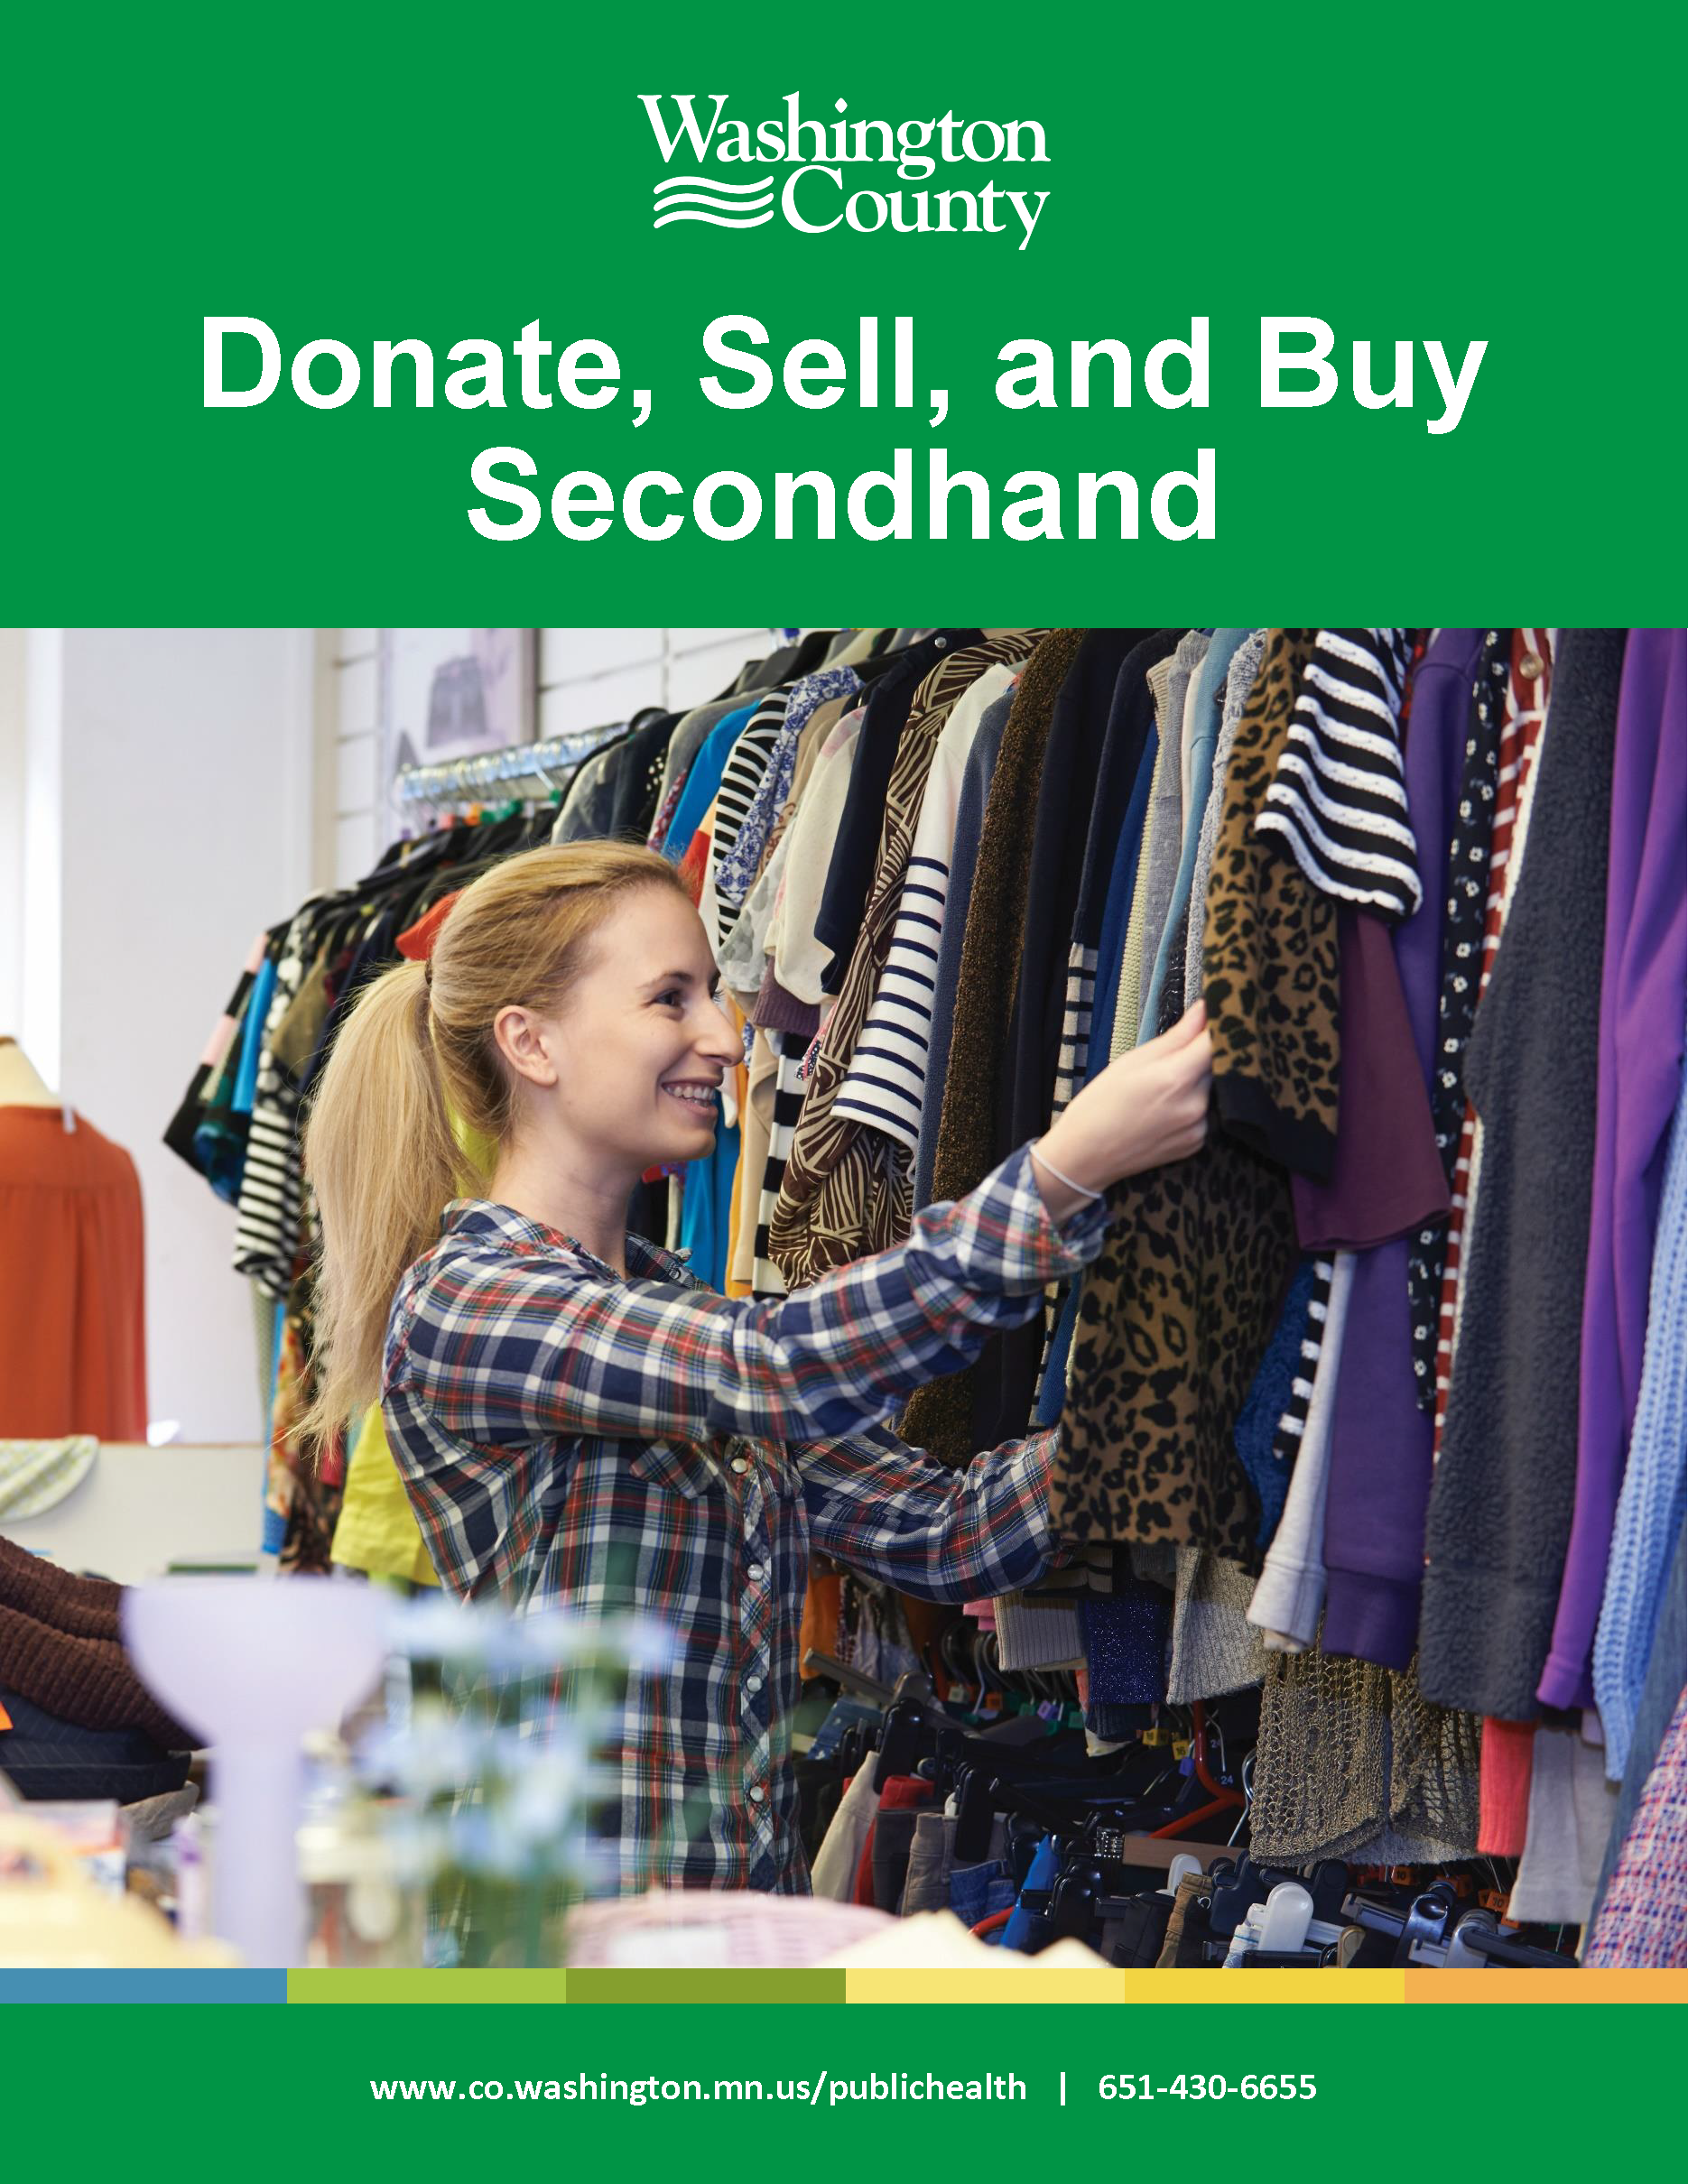 Donation and Secondhand Matrix front cover feature young, blonde women appearing to be shopping for